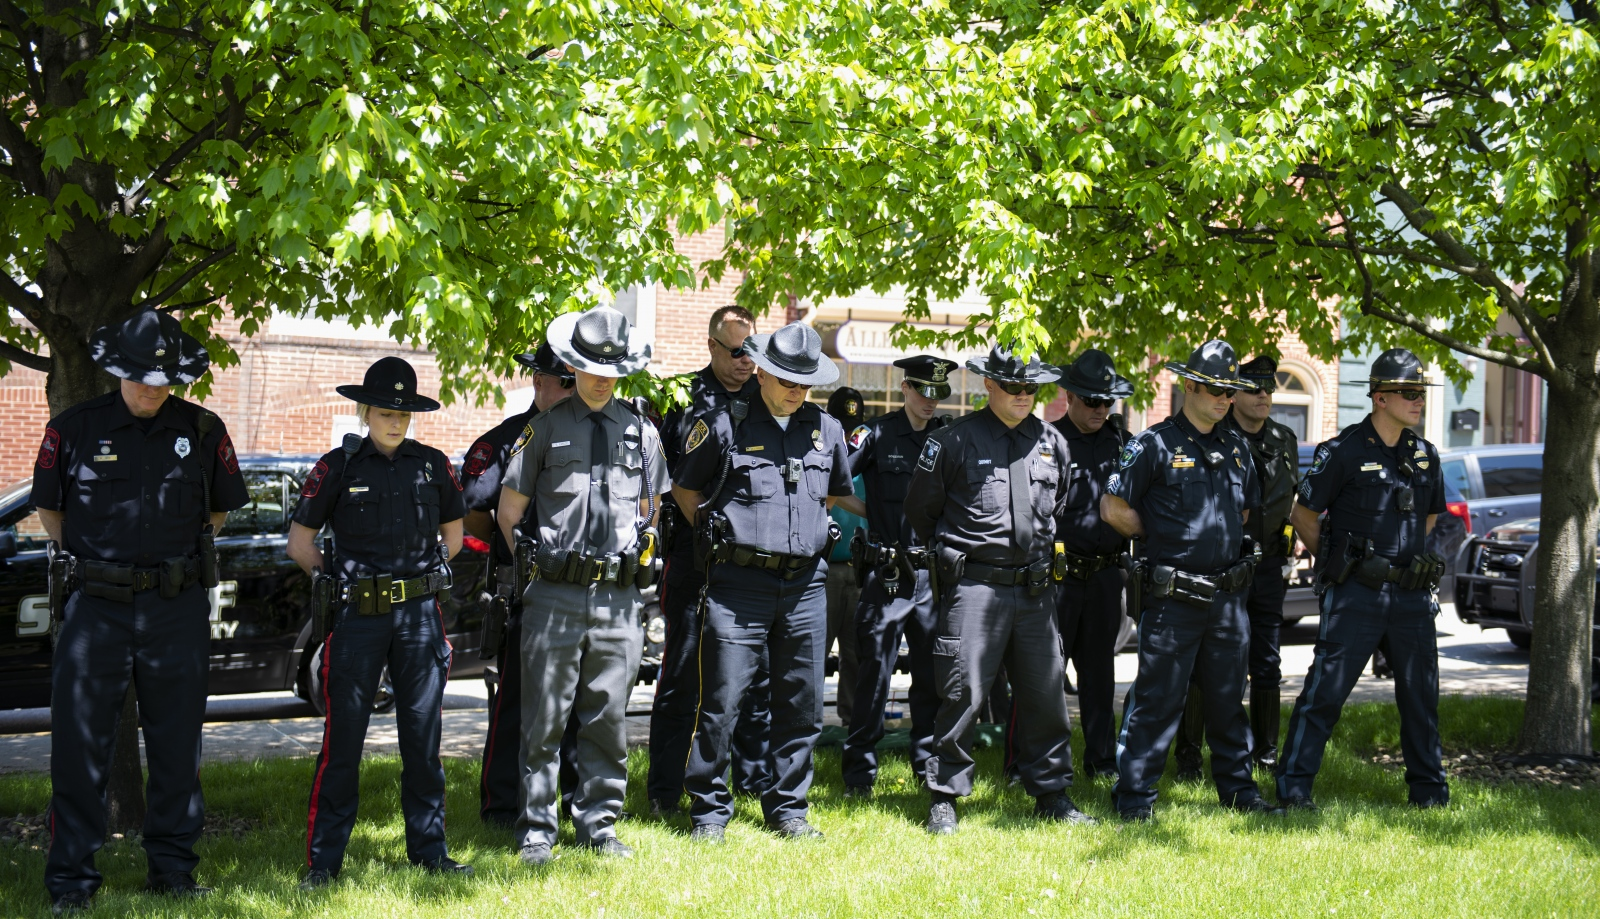 Police officers listen to the speaker at the annual Centre County Law Enforcement Memorial ceremony at the Centre County Courthouse in Bellefonte on Wednesday, May 15, 2019.